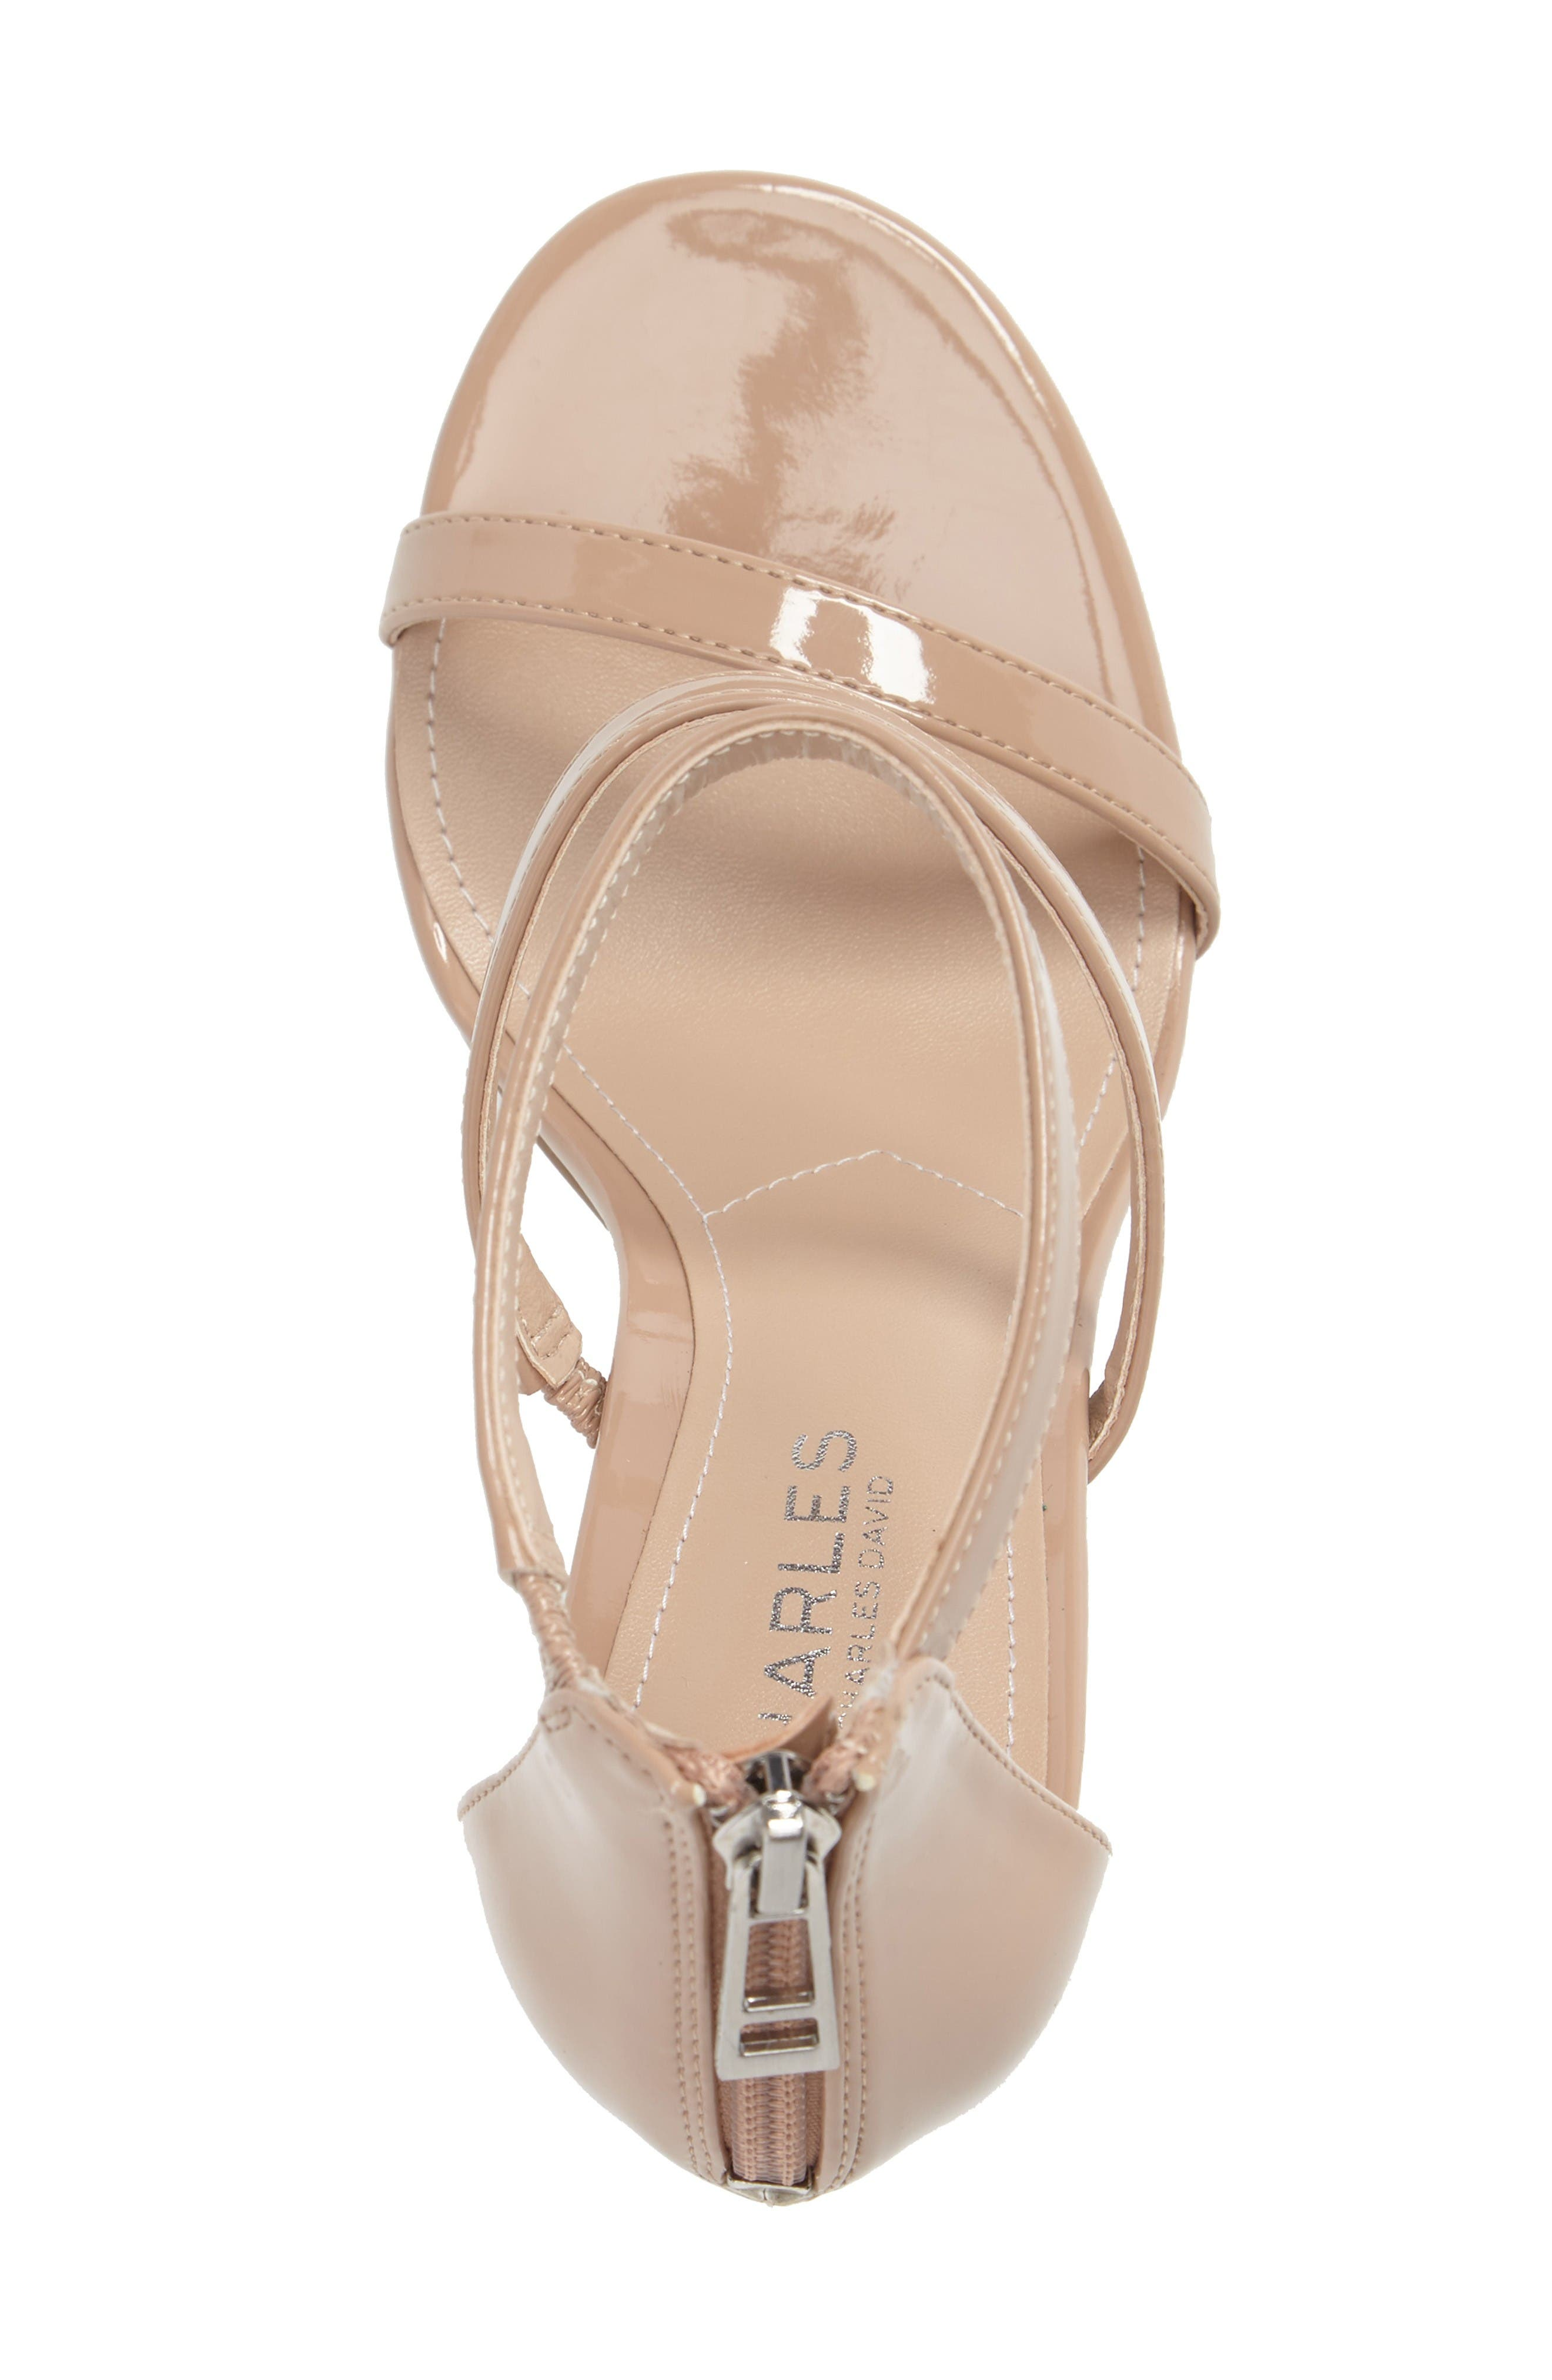 Ria Strappy Sandal,                             Alternate thumbnail 3, color,                             Nude Patent Leather